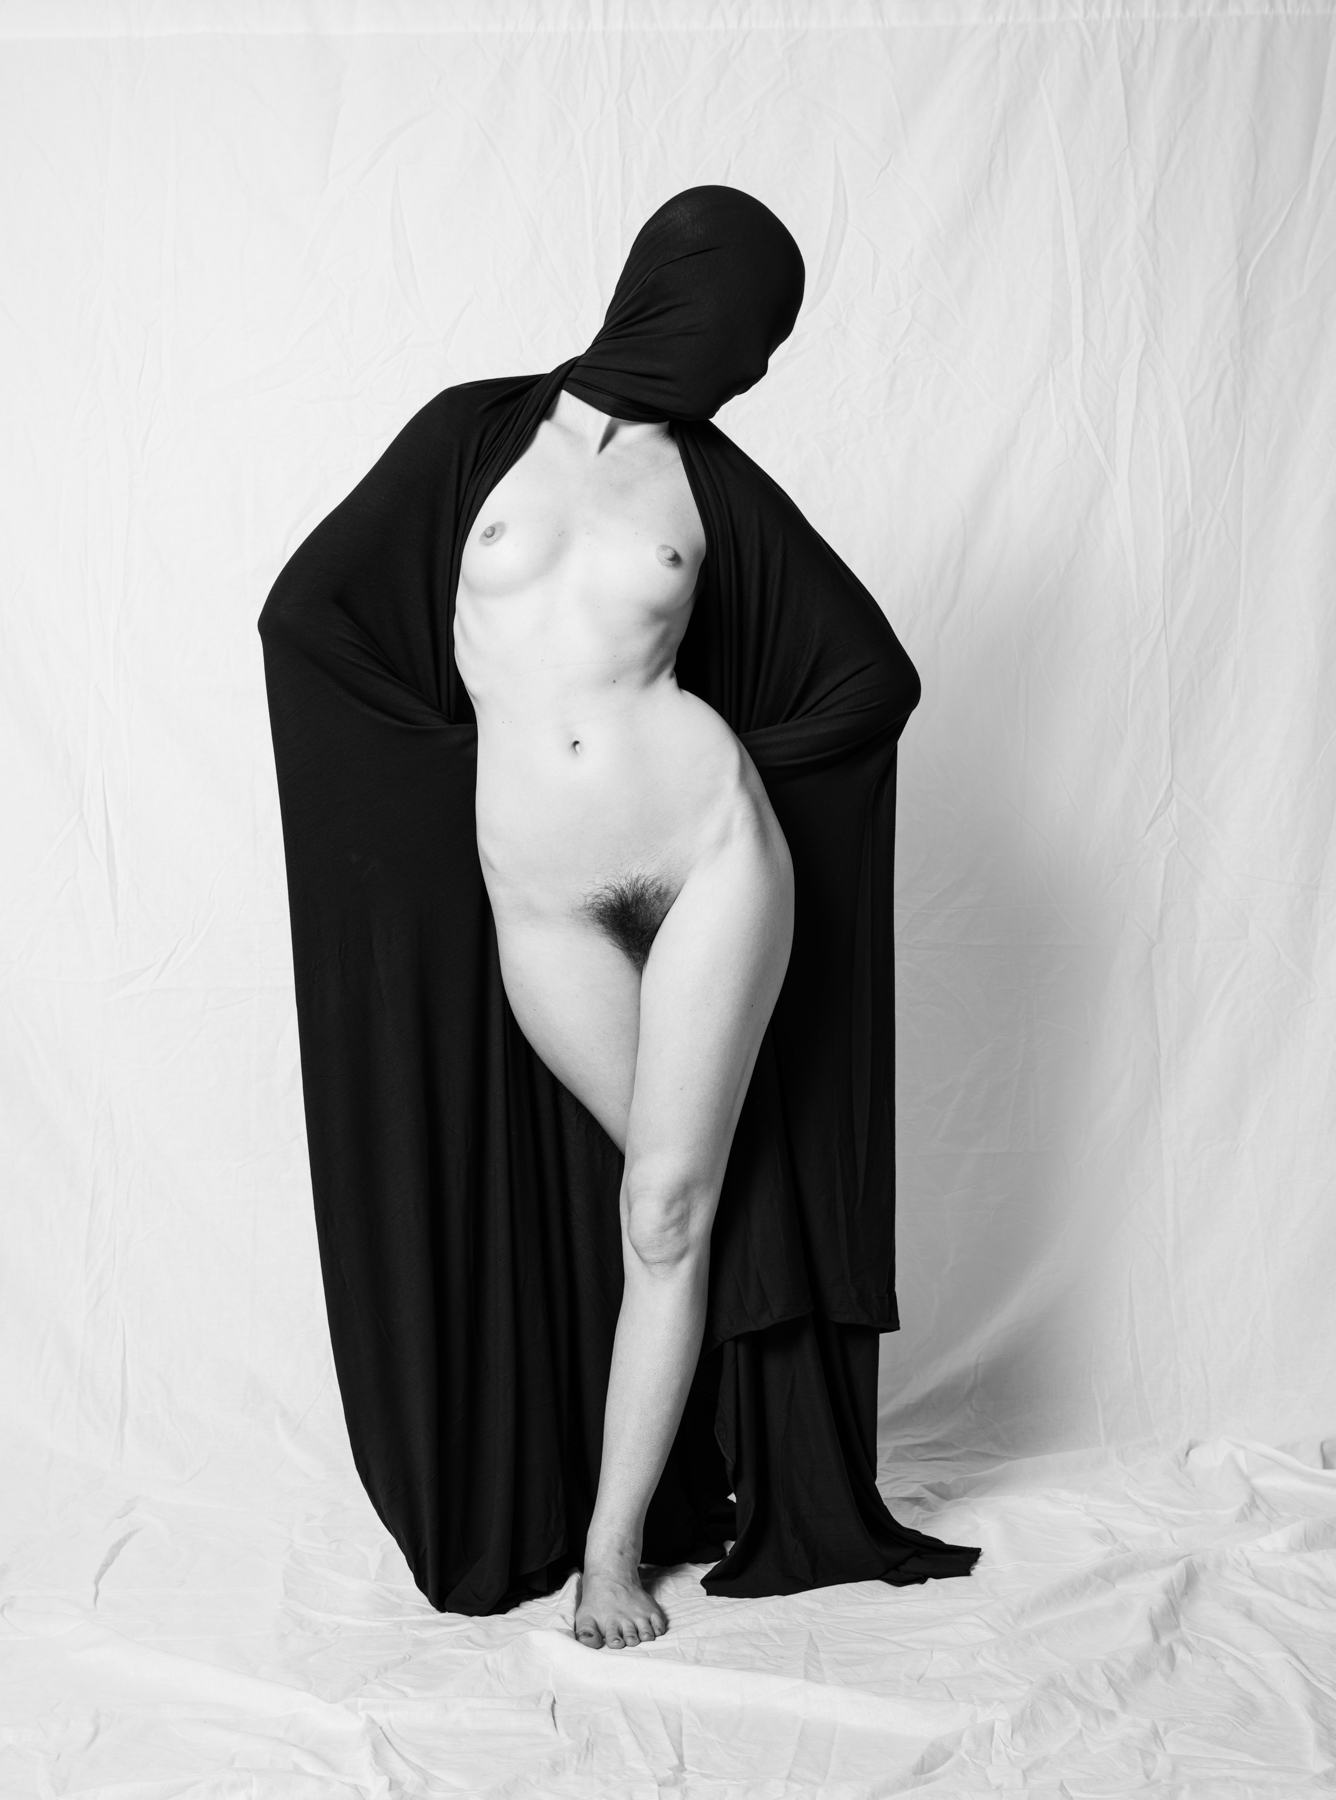 Saman_Majd_Behind the Veil_Veiled_5.jpg